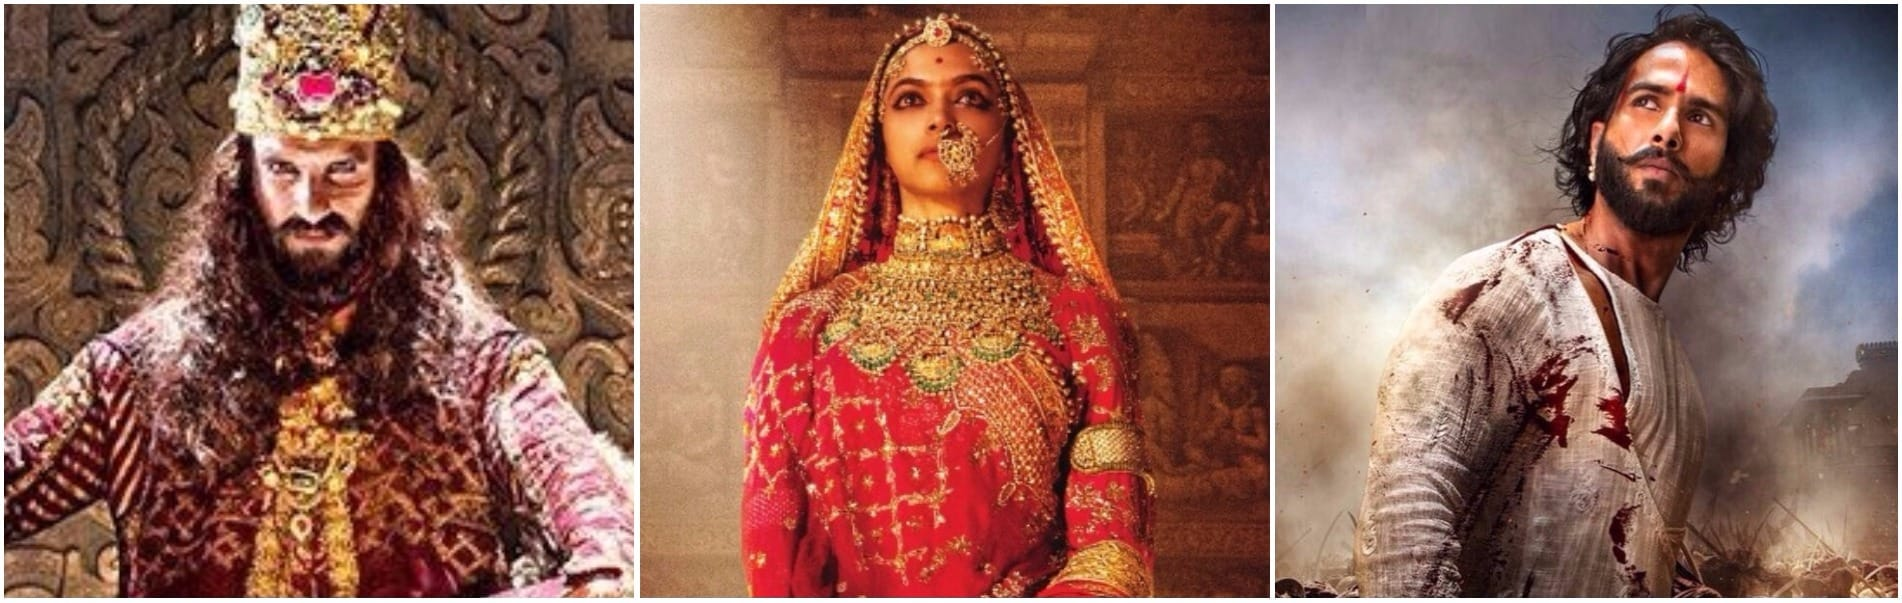 SC lifts ban on Padmaavat: High time states step up to protect freedom of speech, fringe must not be catered to